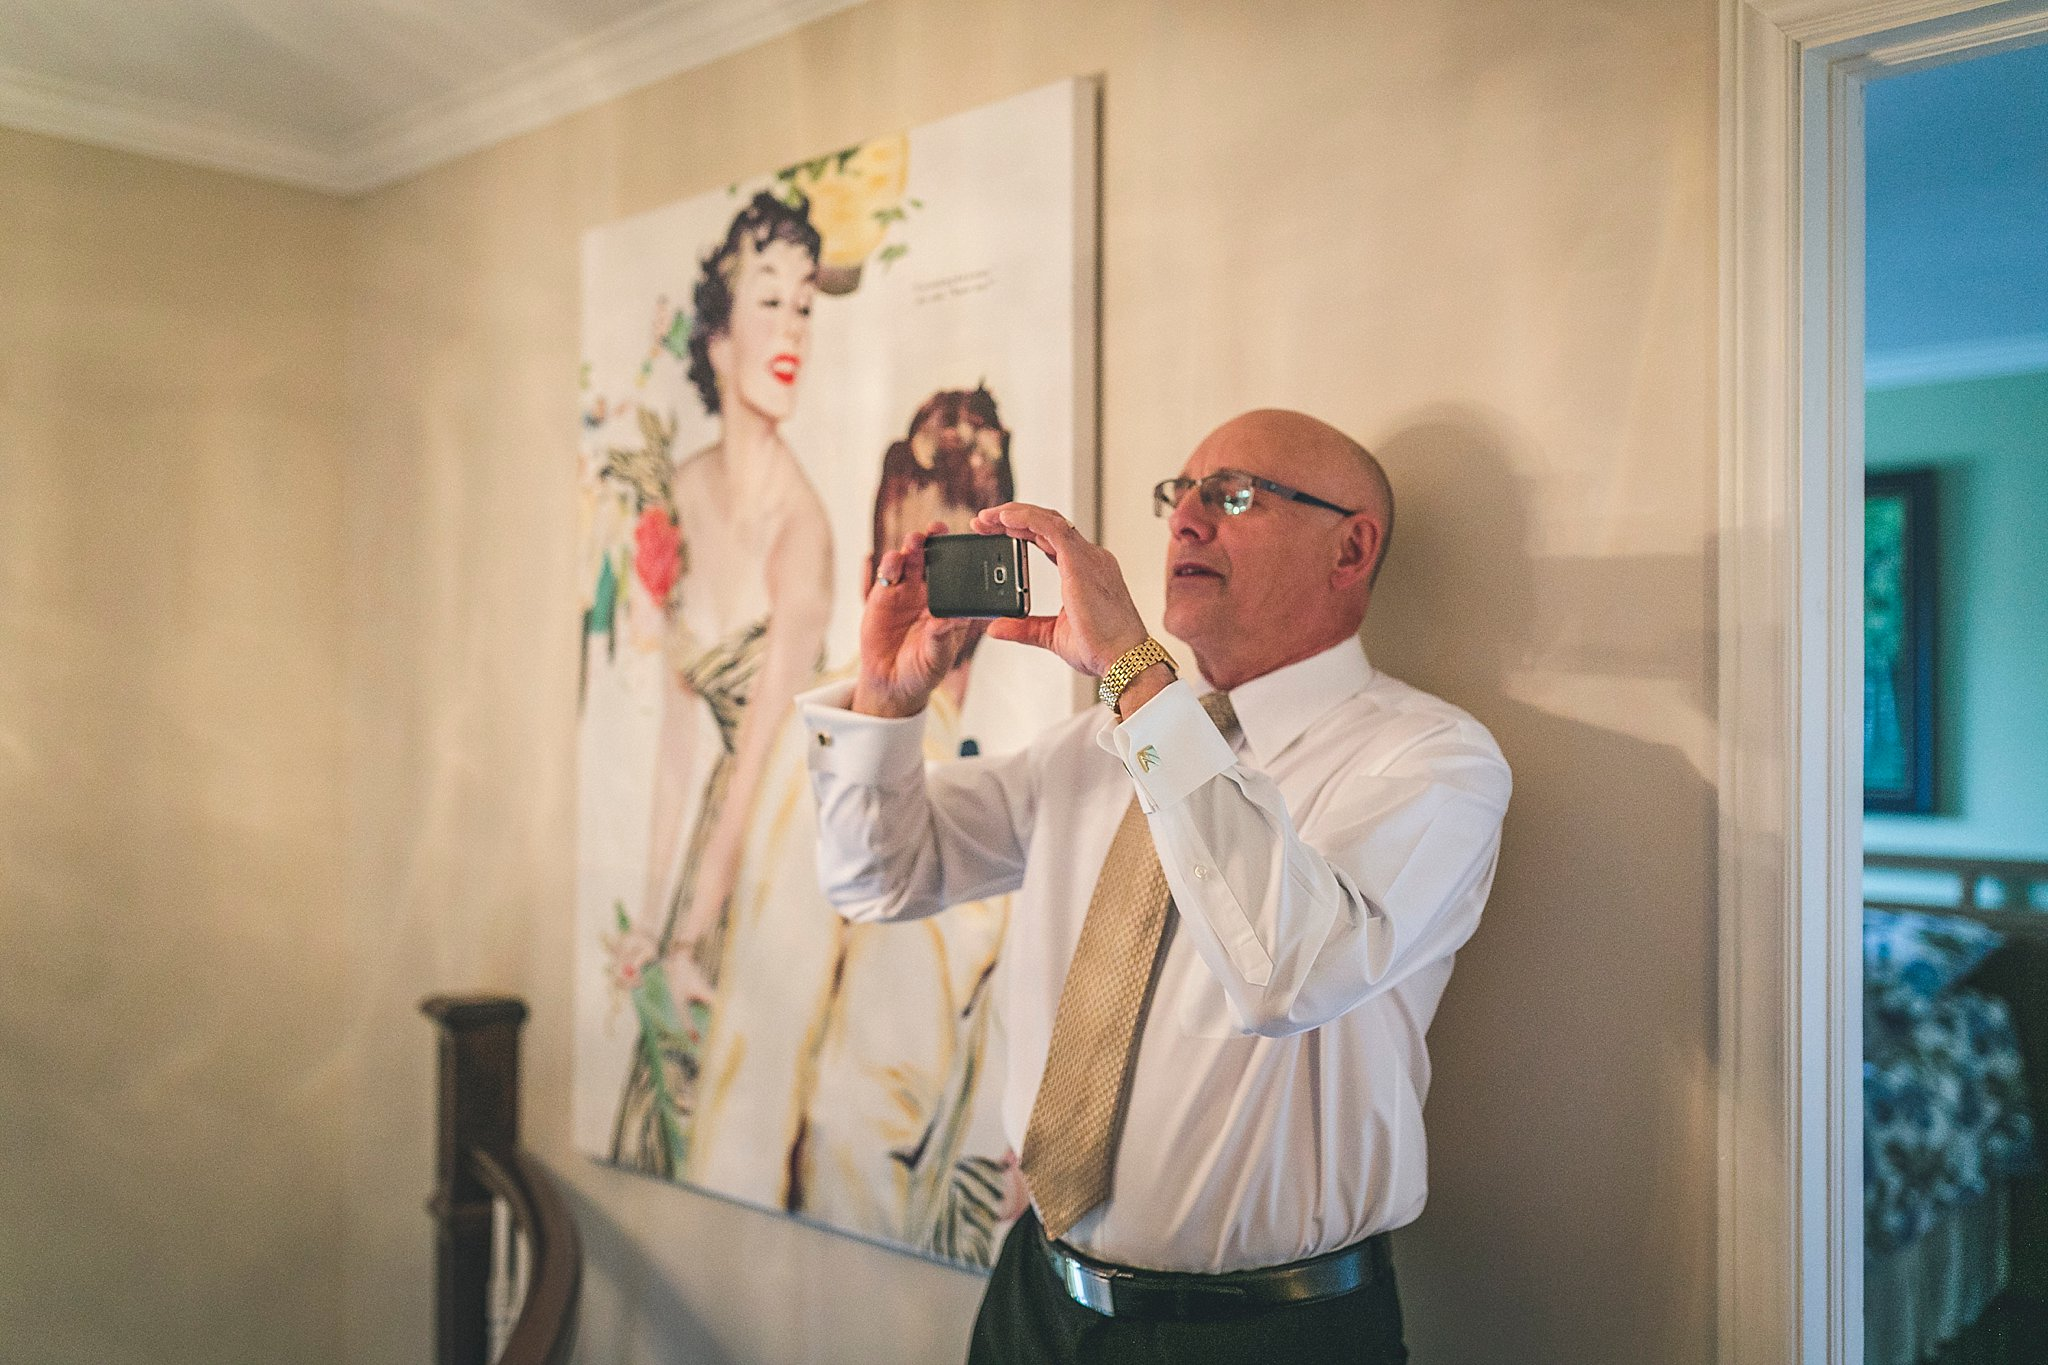 Father of the Bride happily photographs his daughter on her St. John's Wedding Day